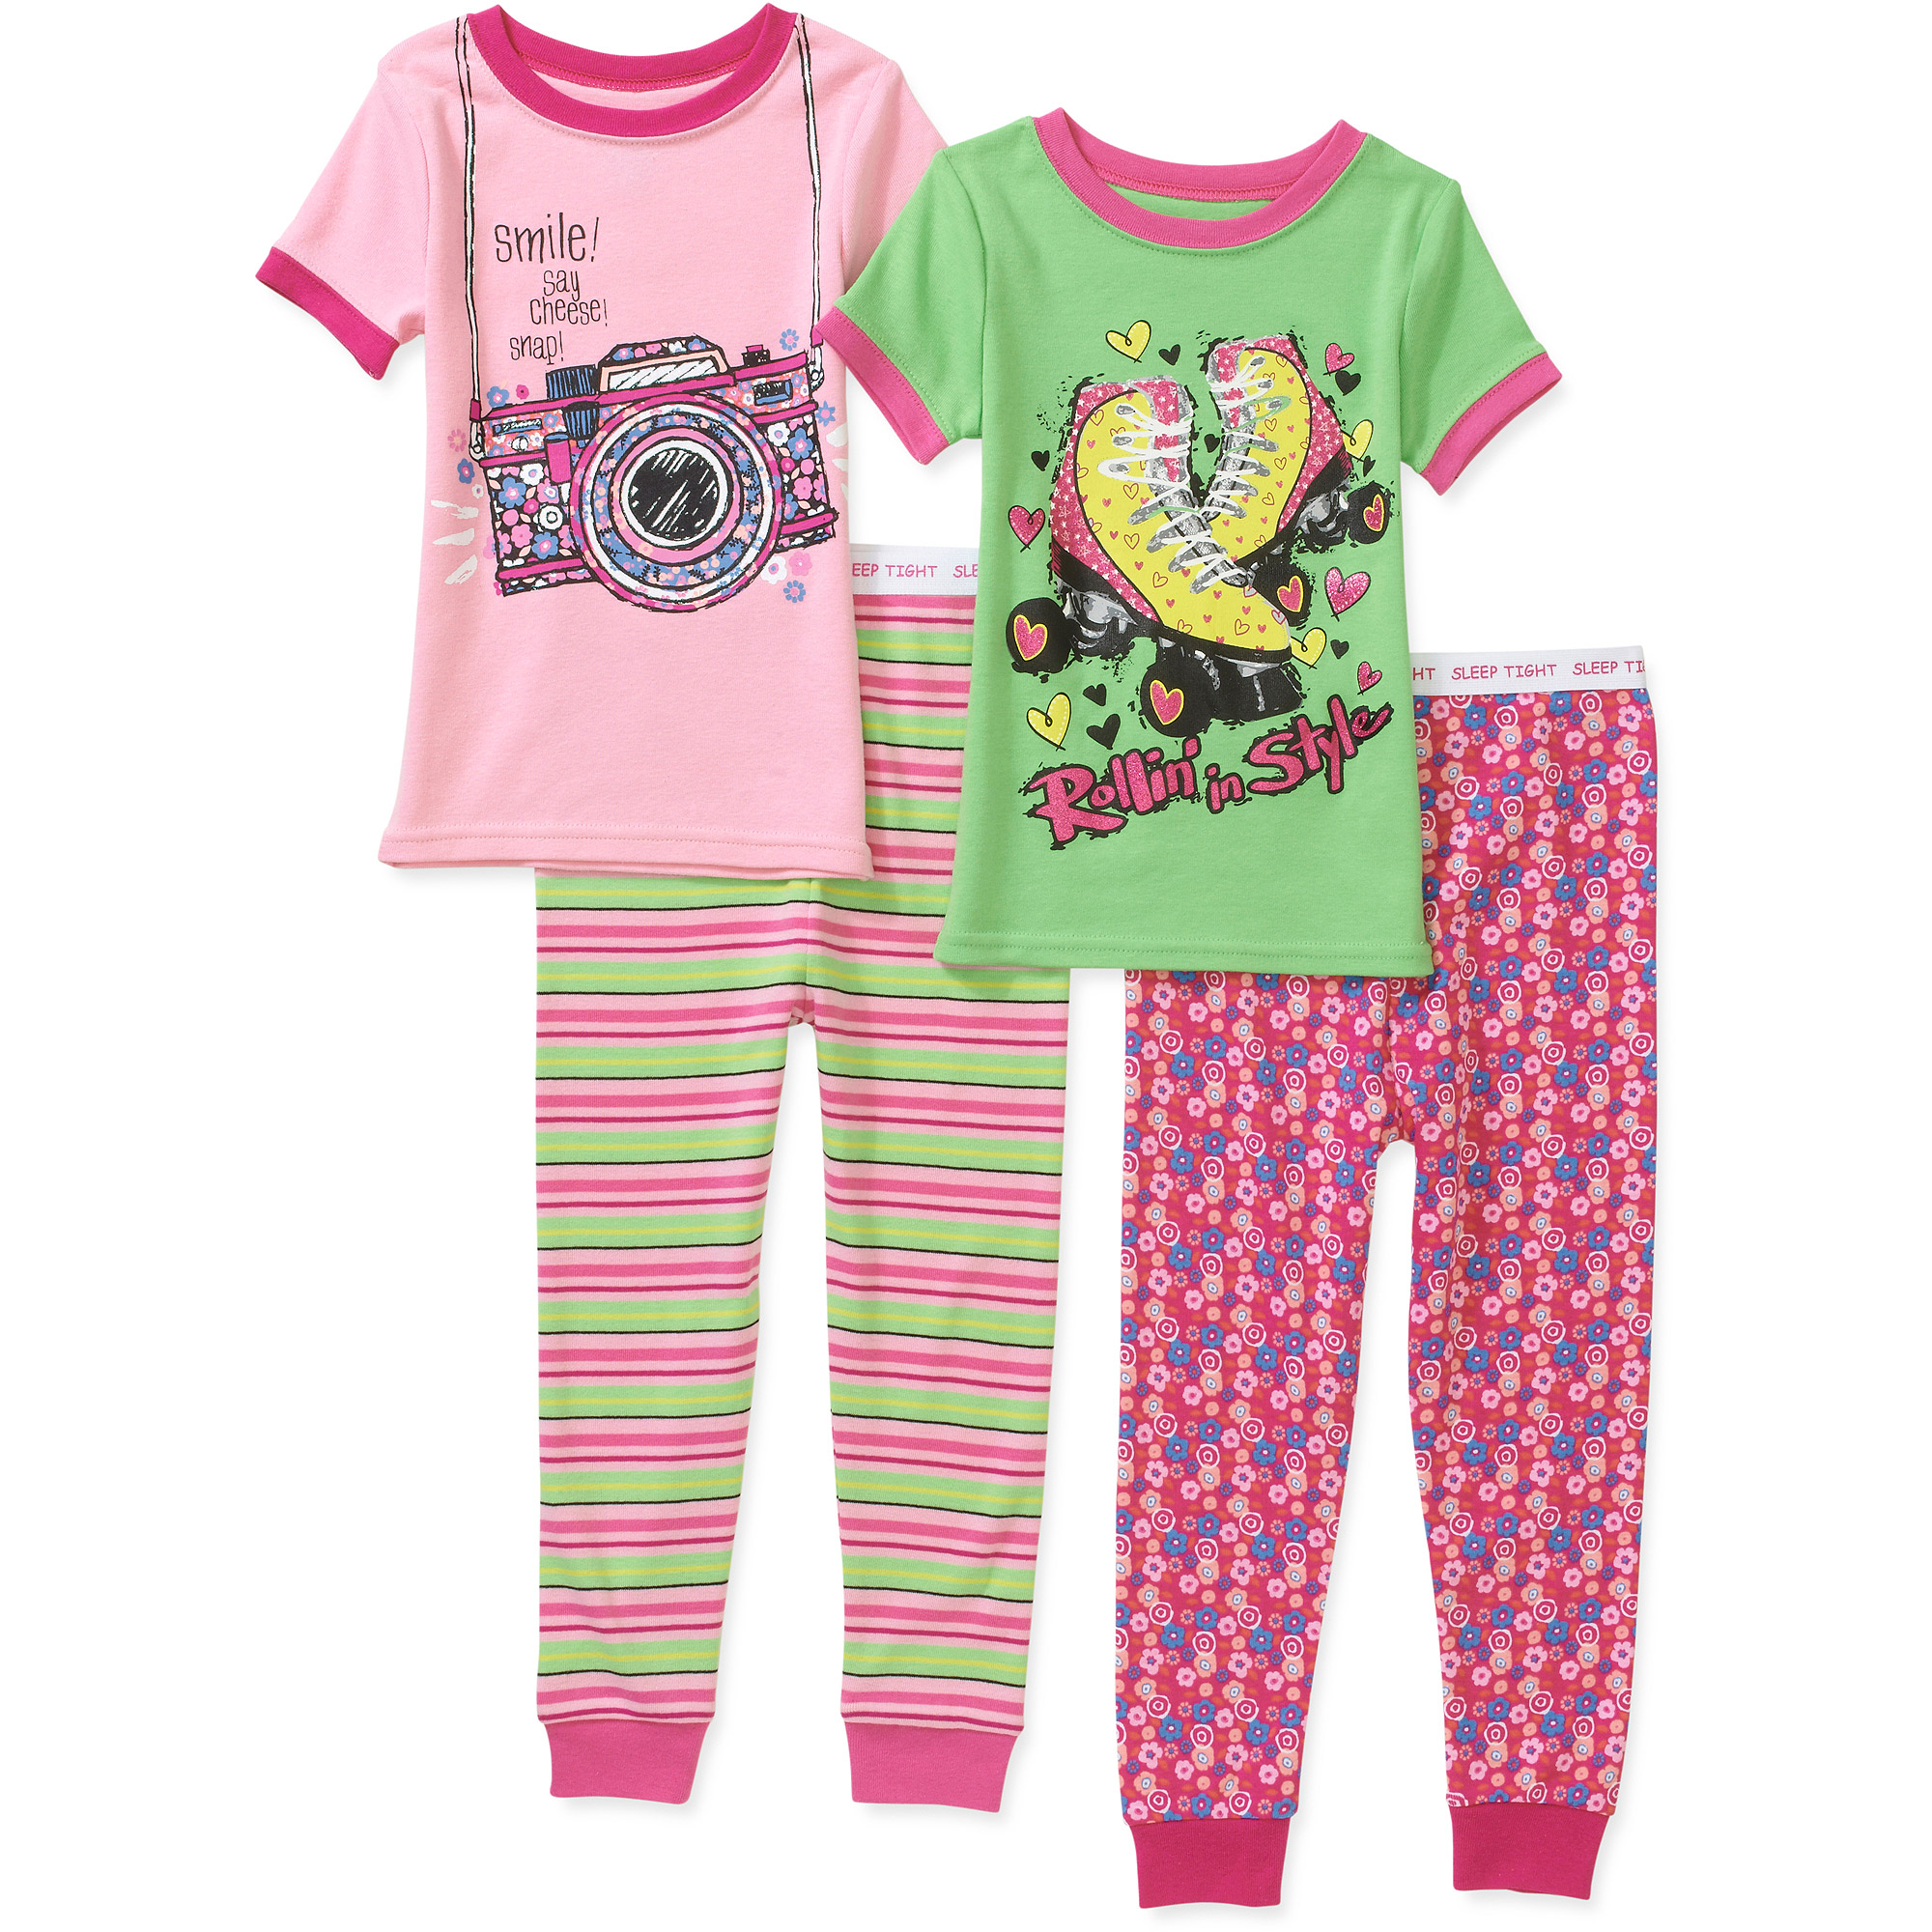 Faded Glory Baby Girls' 4 Piece Tight Fit Cotton PJ Set